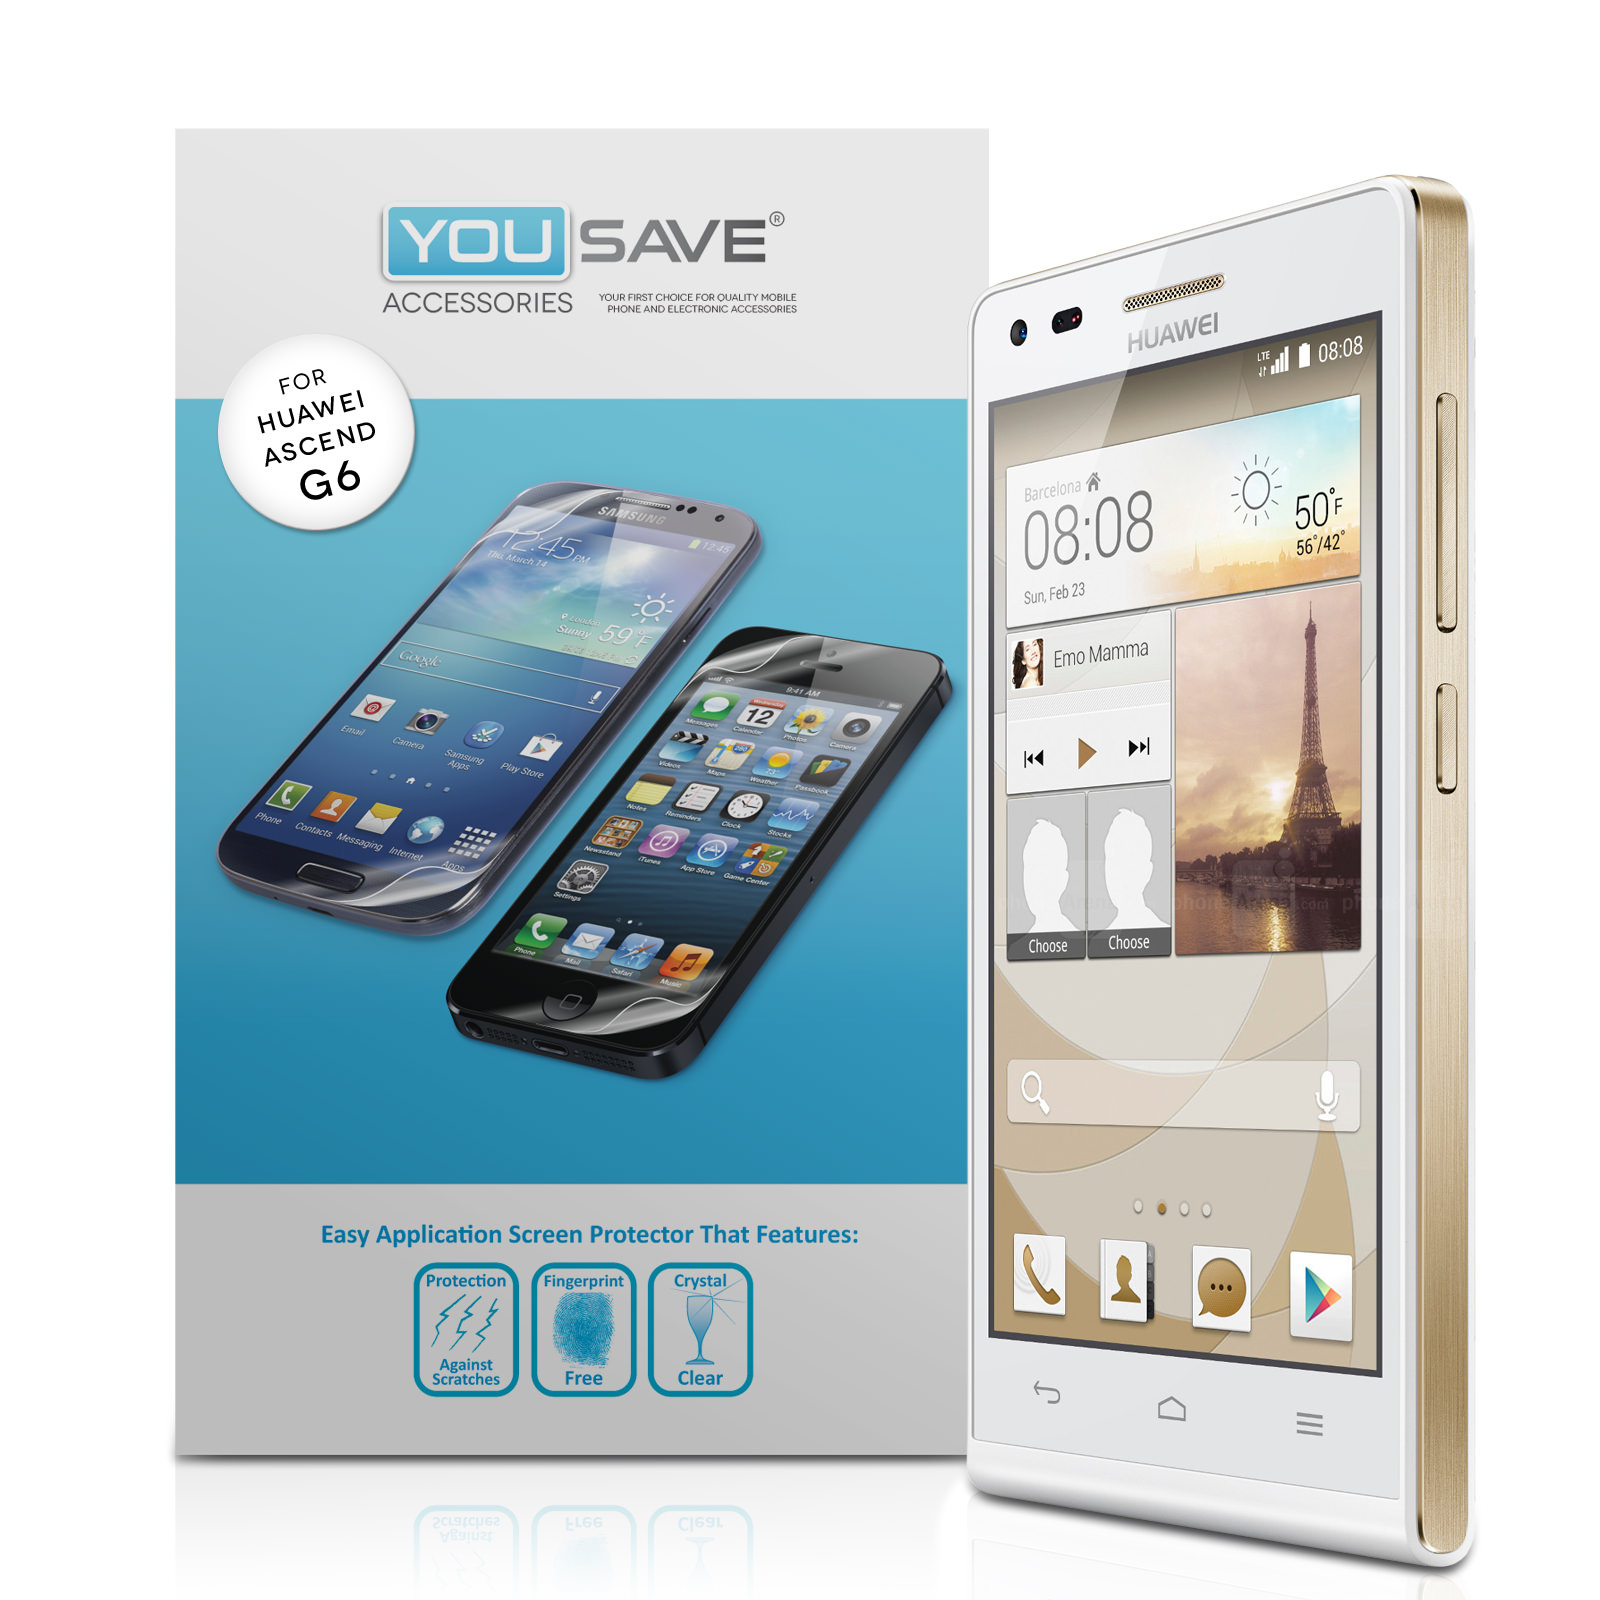 YouSave Accessories Huawei Ascend G6 Screen Protectors x3